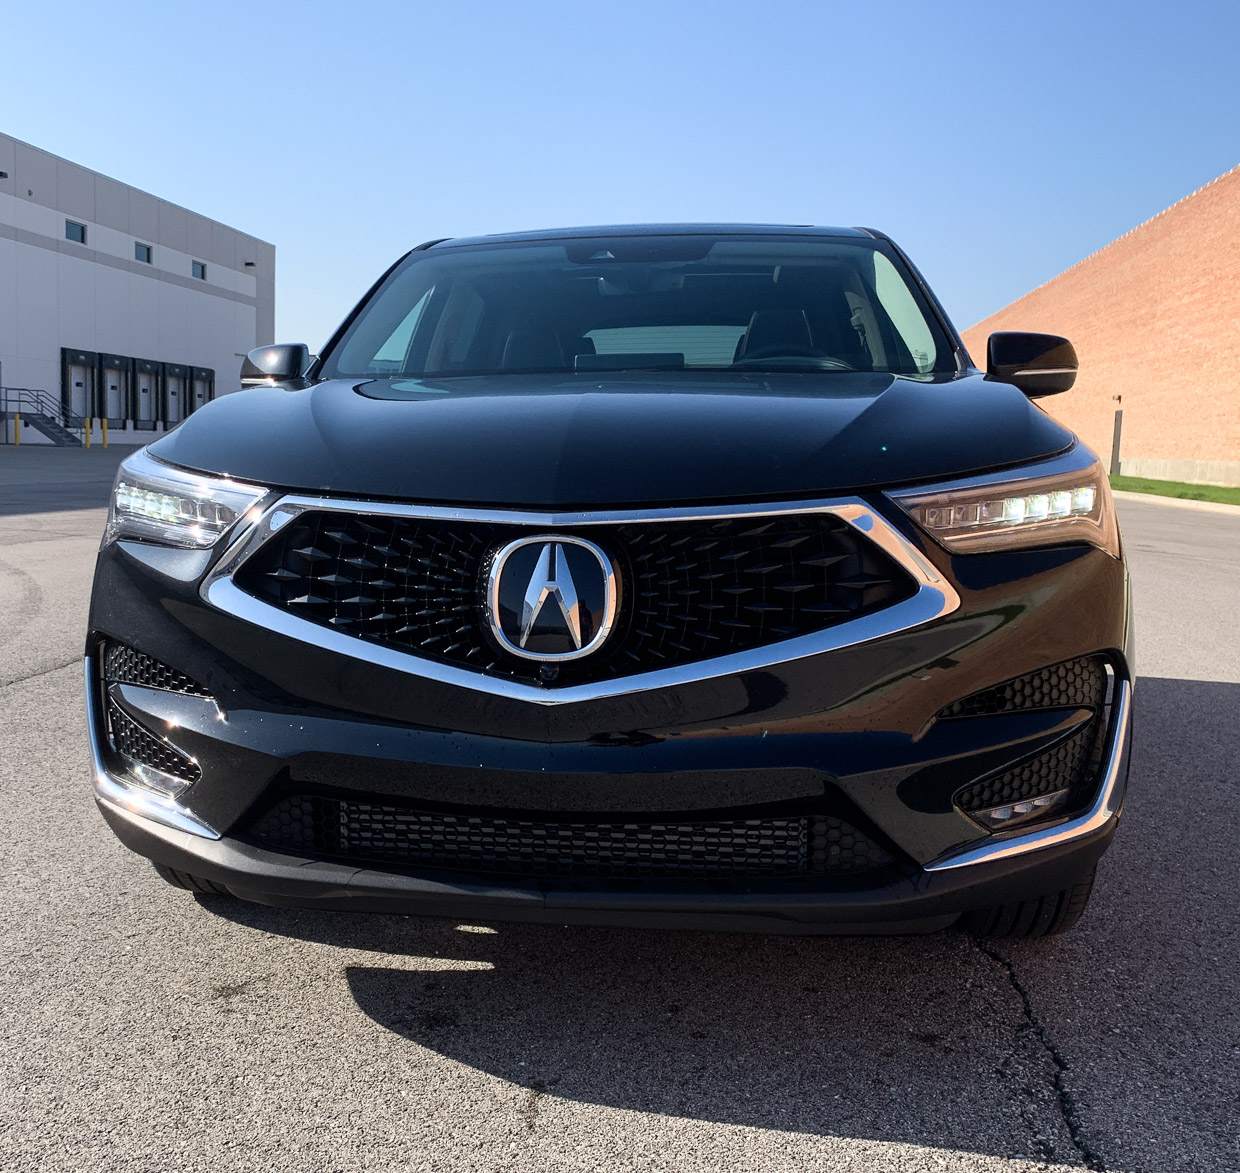 2019 Acura RDX Review: Precision, Performance, And A